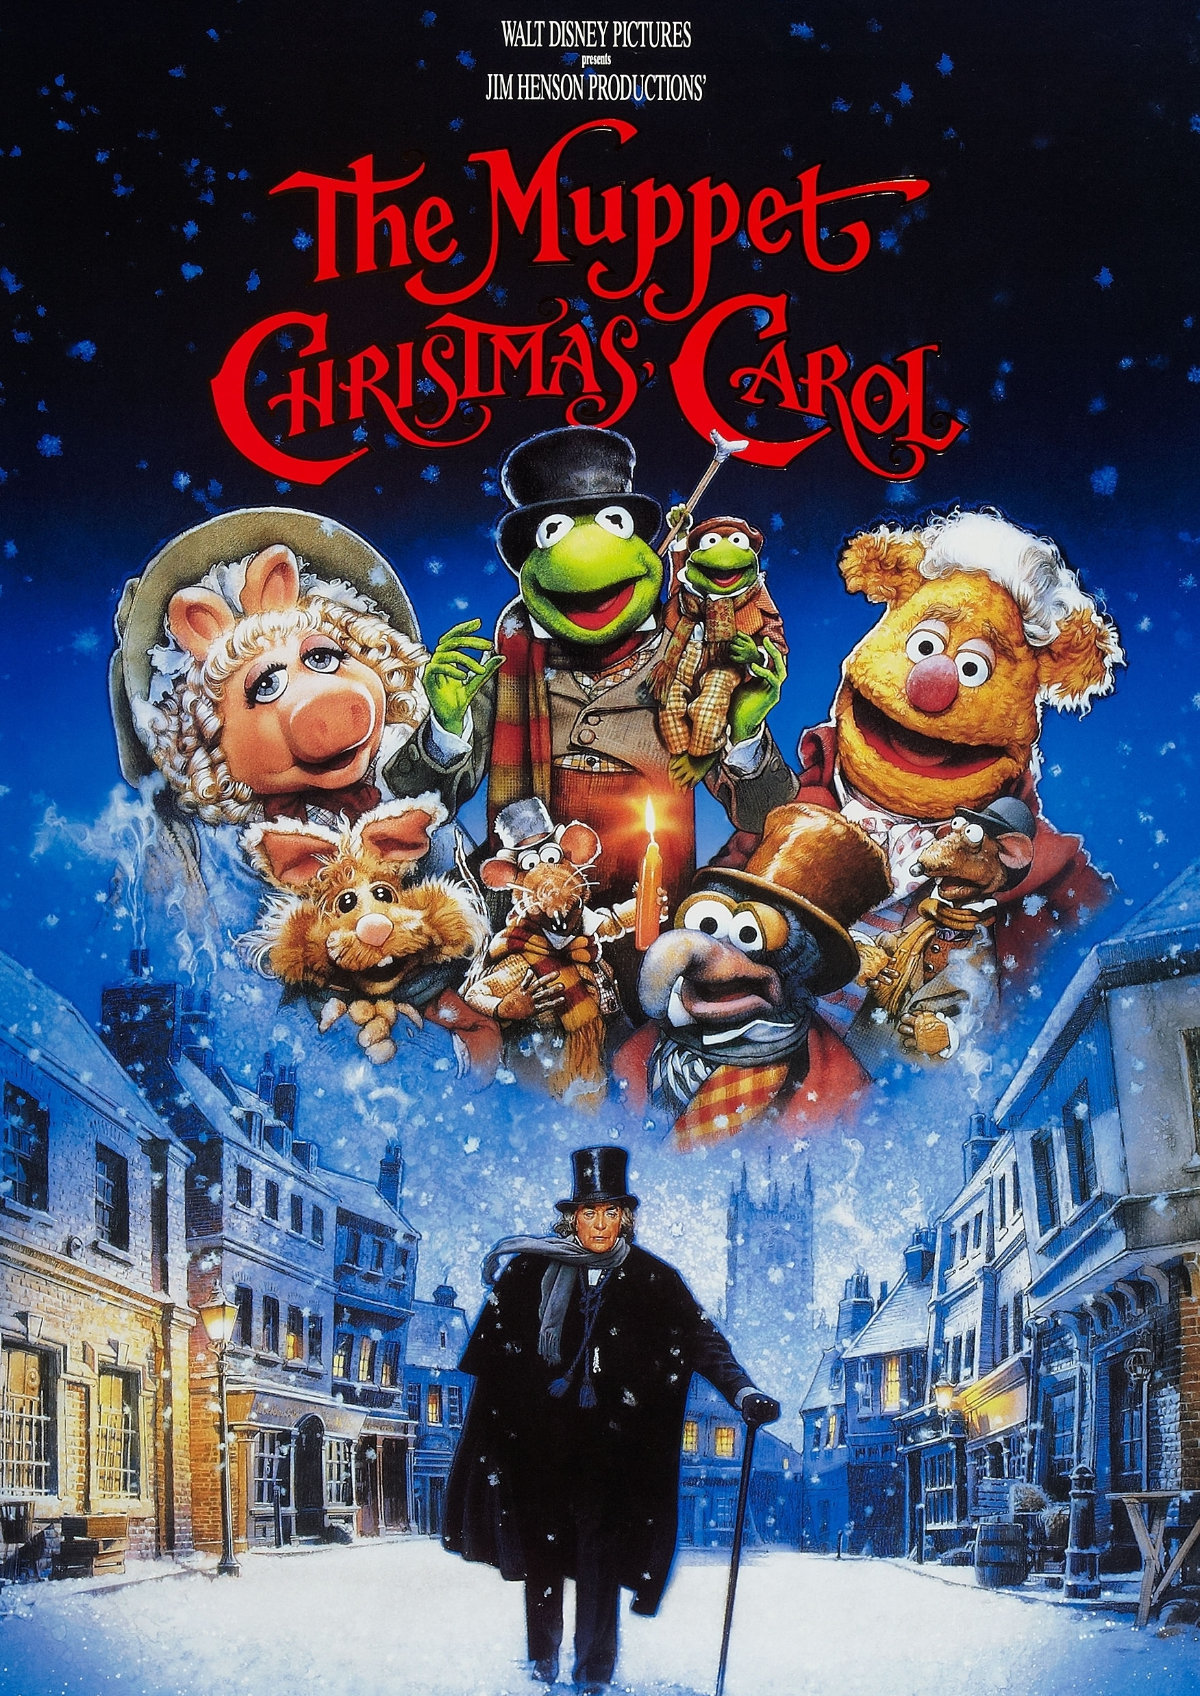 'The Muppet Christmas Carol' movie poster